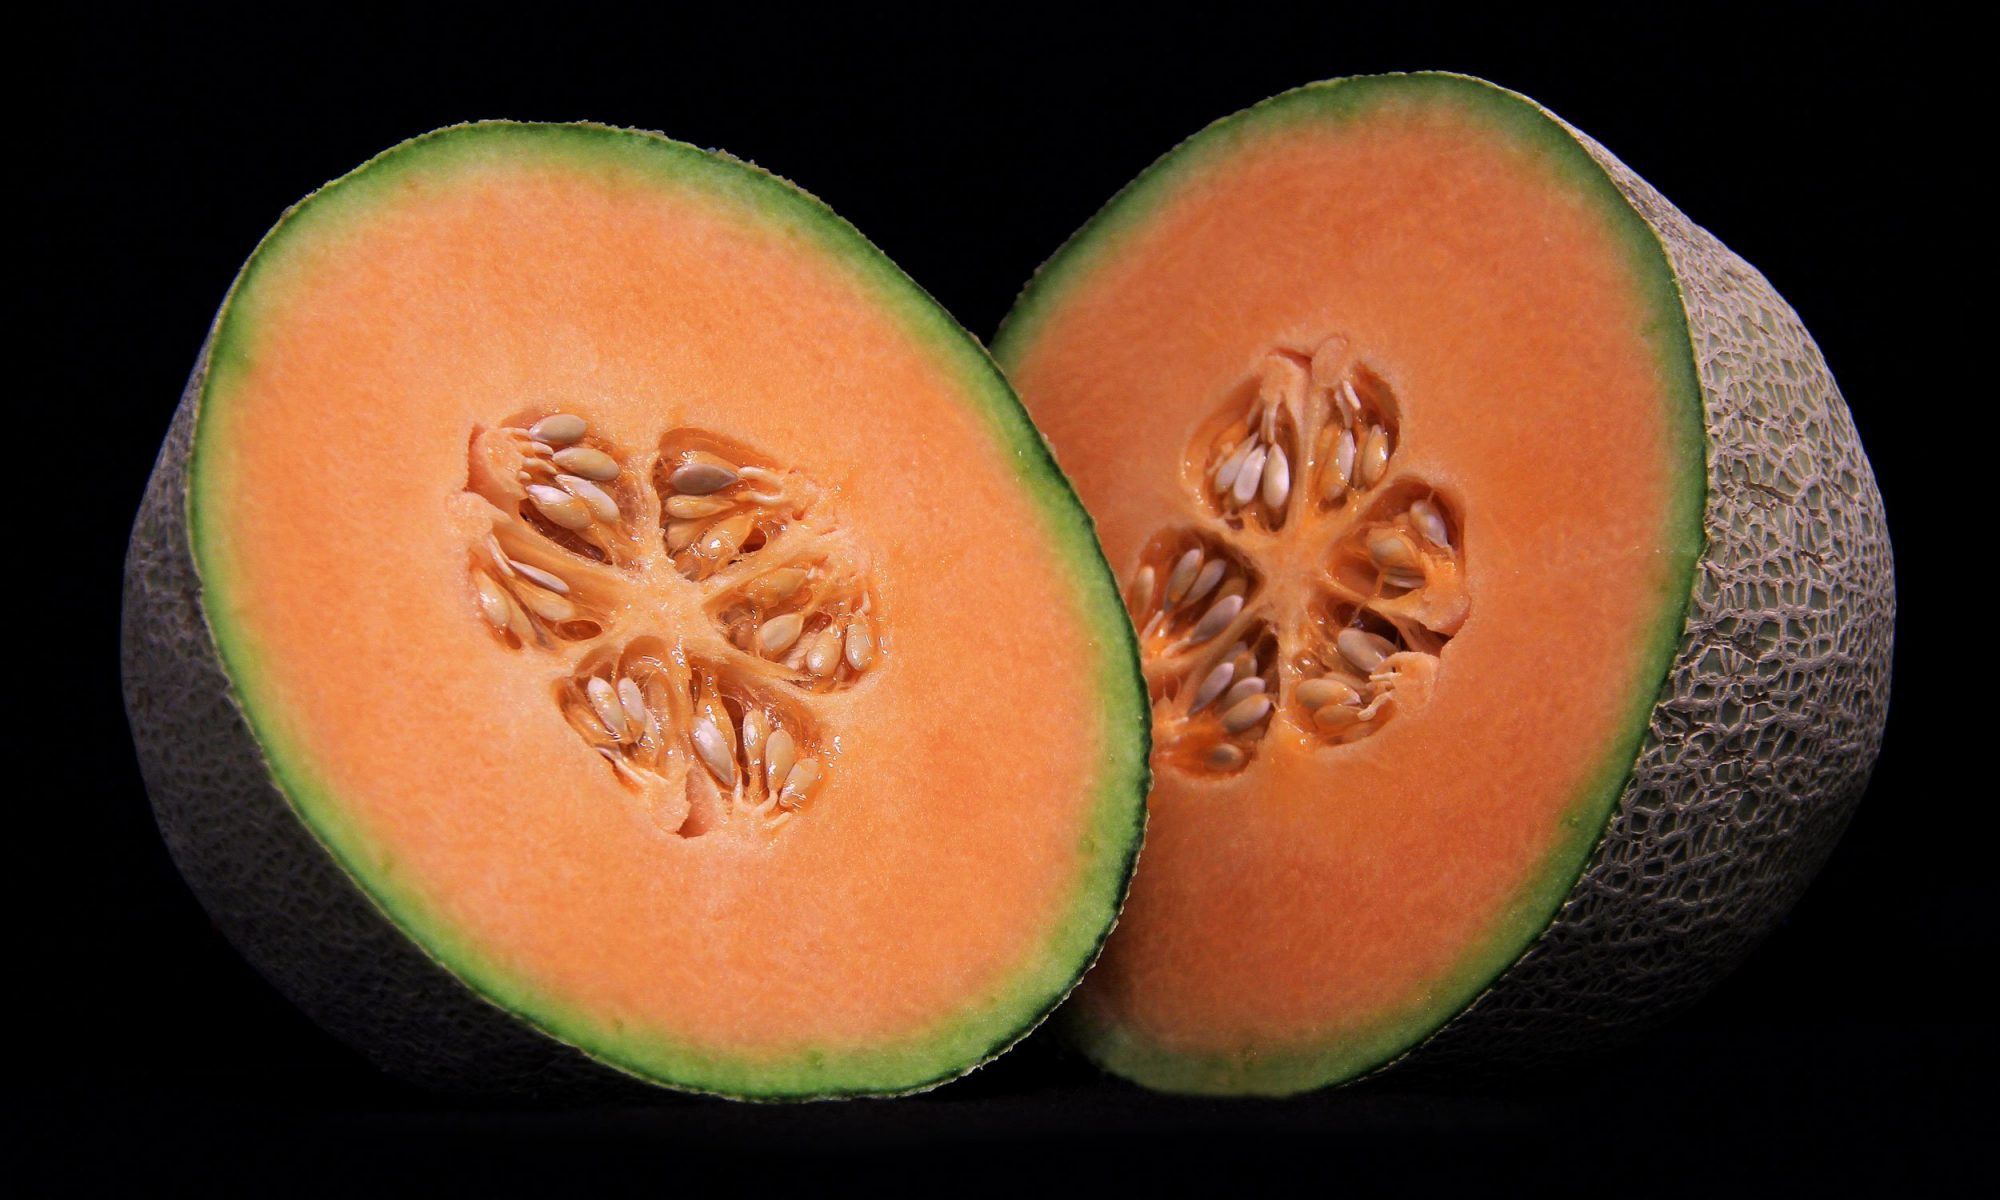 What You Think Are Cantaloupes Are Not Actually Cantaloupes